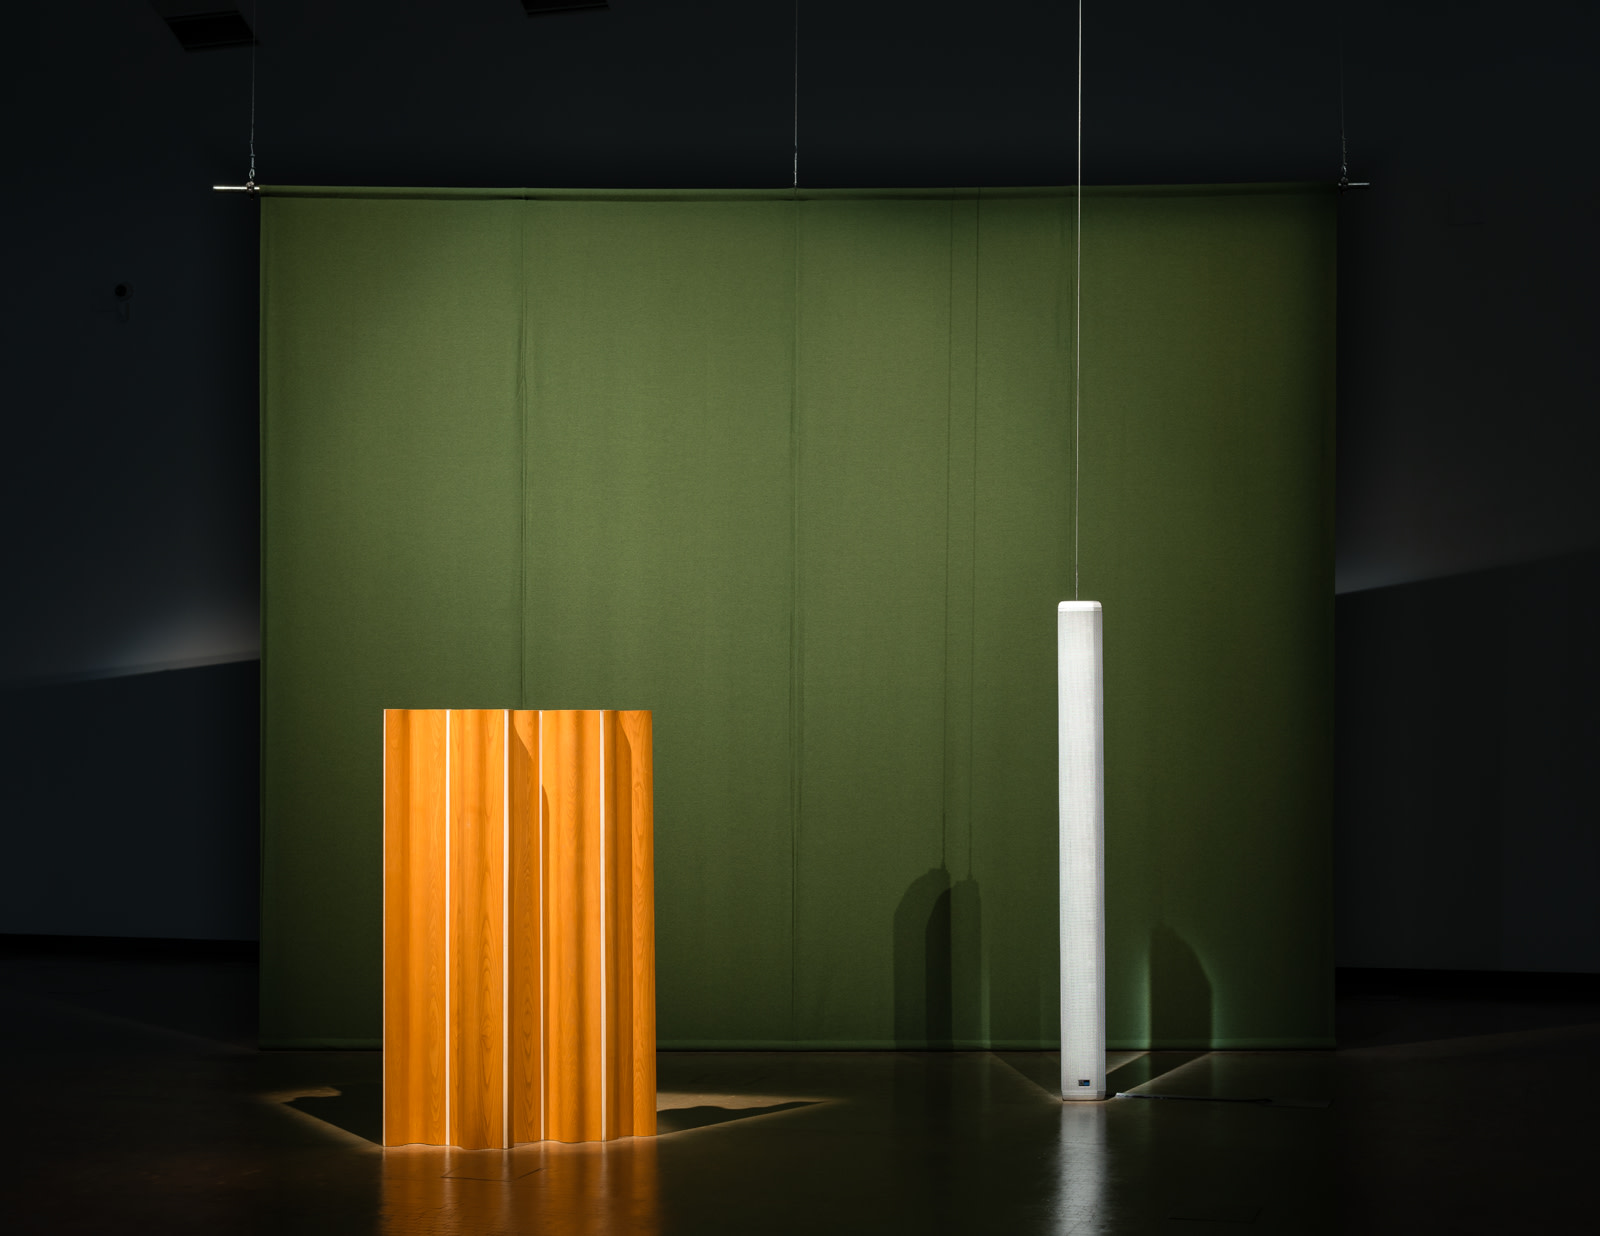 <p>Installation view, Florian Hecker, <em>Hallucination, Perspective, Synthesis</em>, Kunsthalle Wien, 17 November 2017 – 14 January 2018</p>